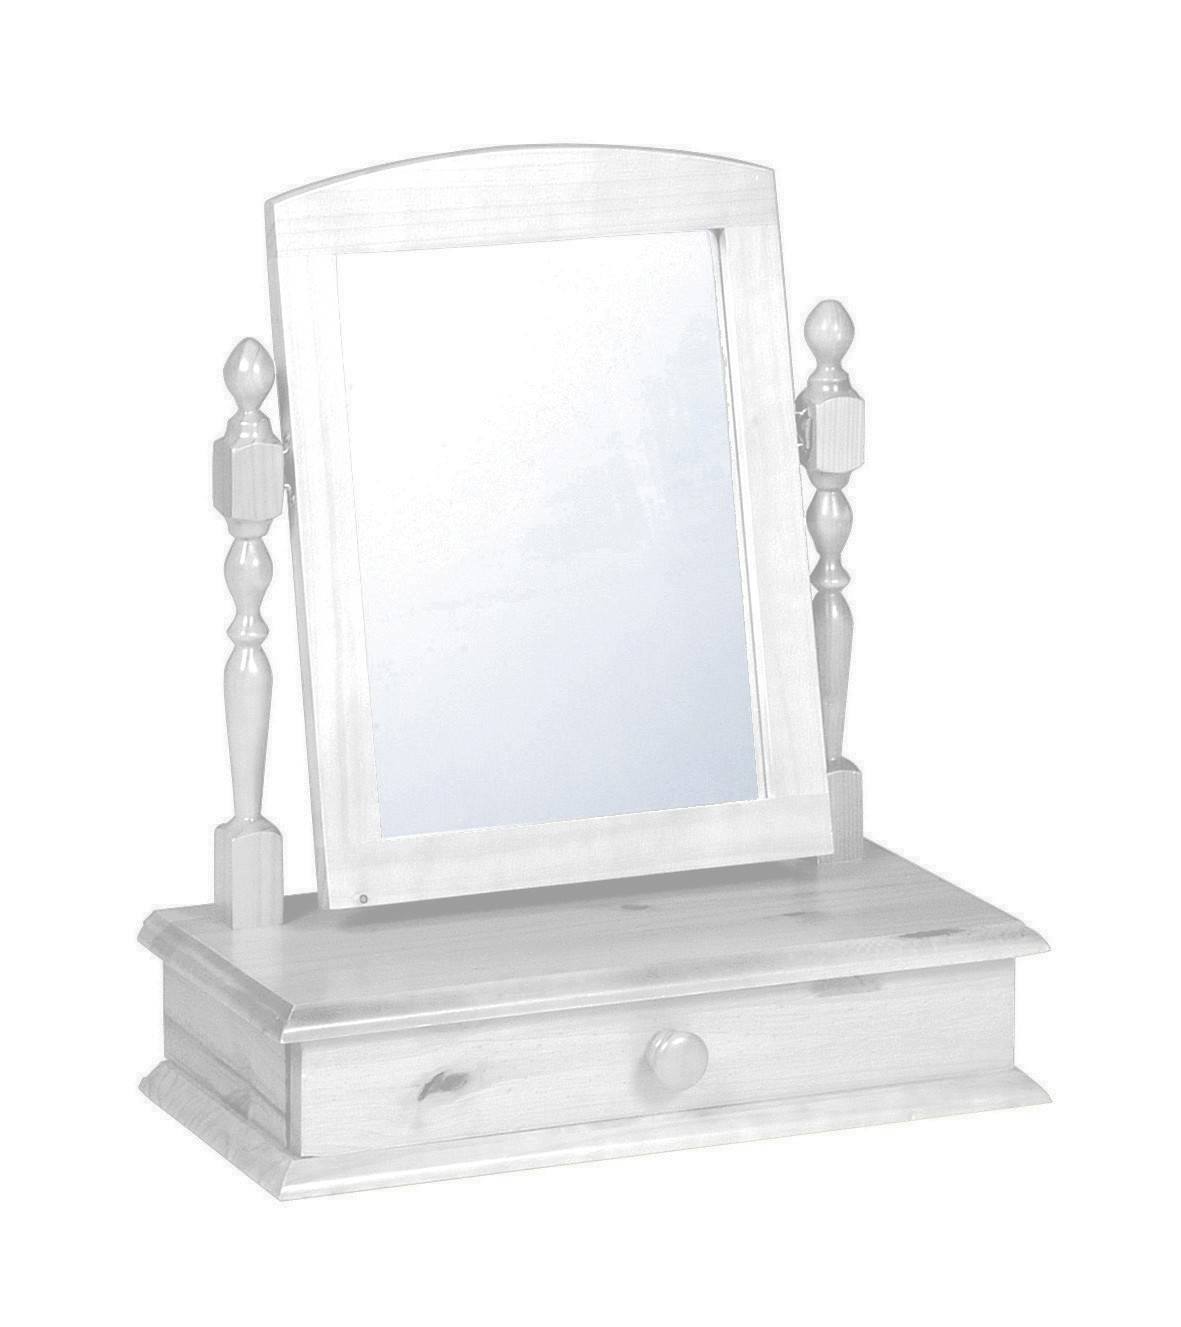 Large Freestanding, Cheval Mirror In Antique, Graphite Or Whitewash intended for Free Standing Table Mirrors (Image 4 of 15)